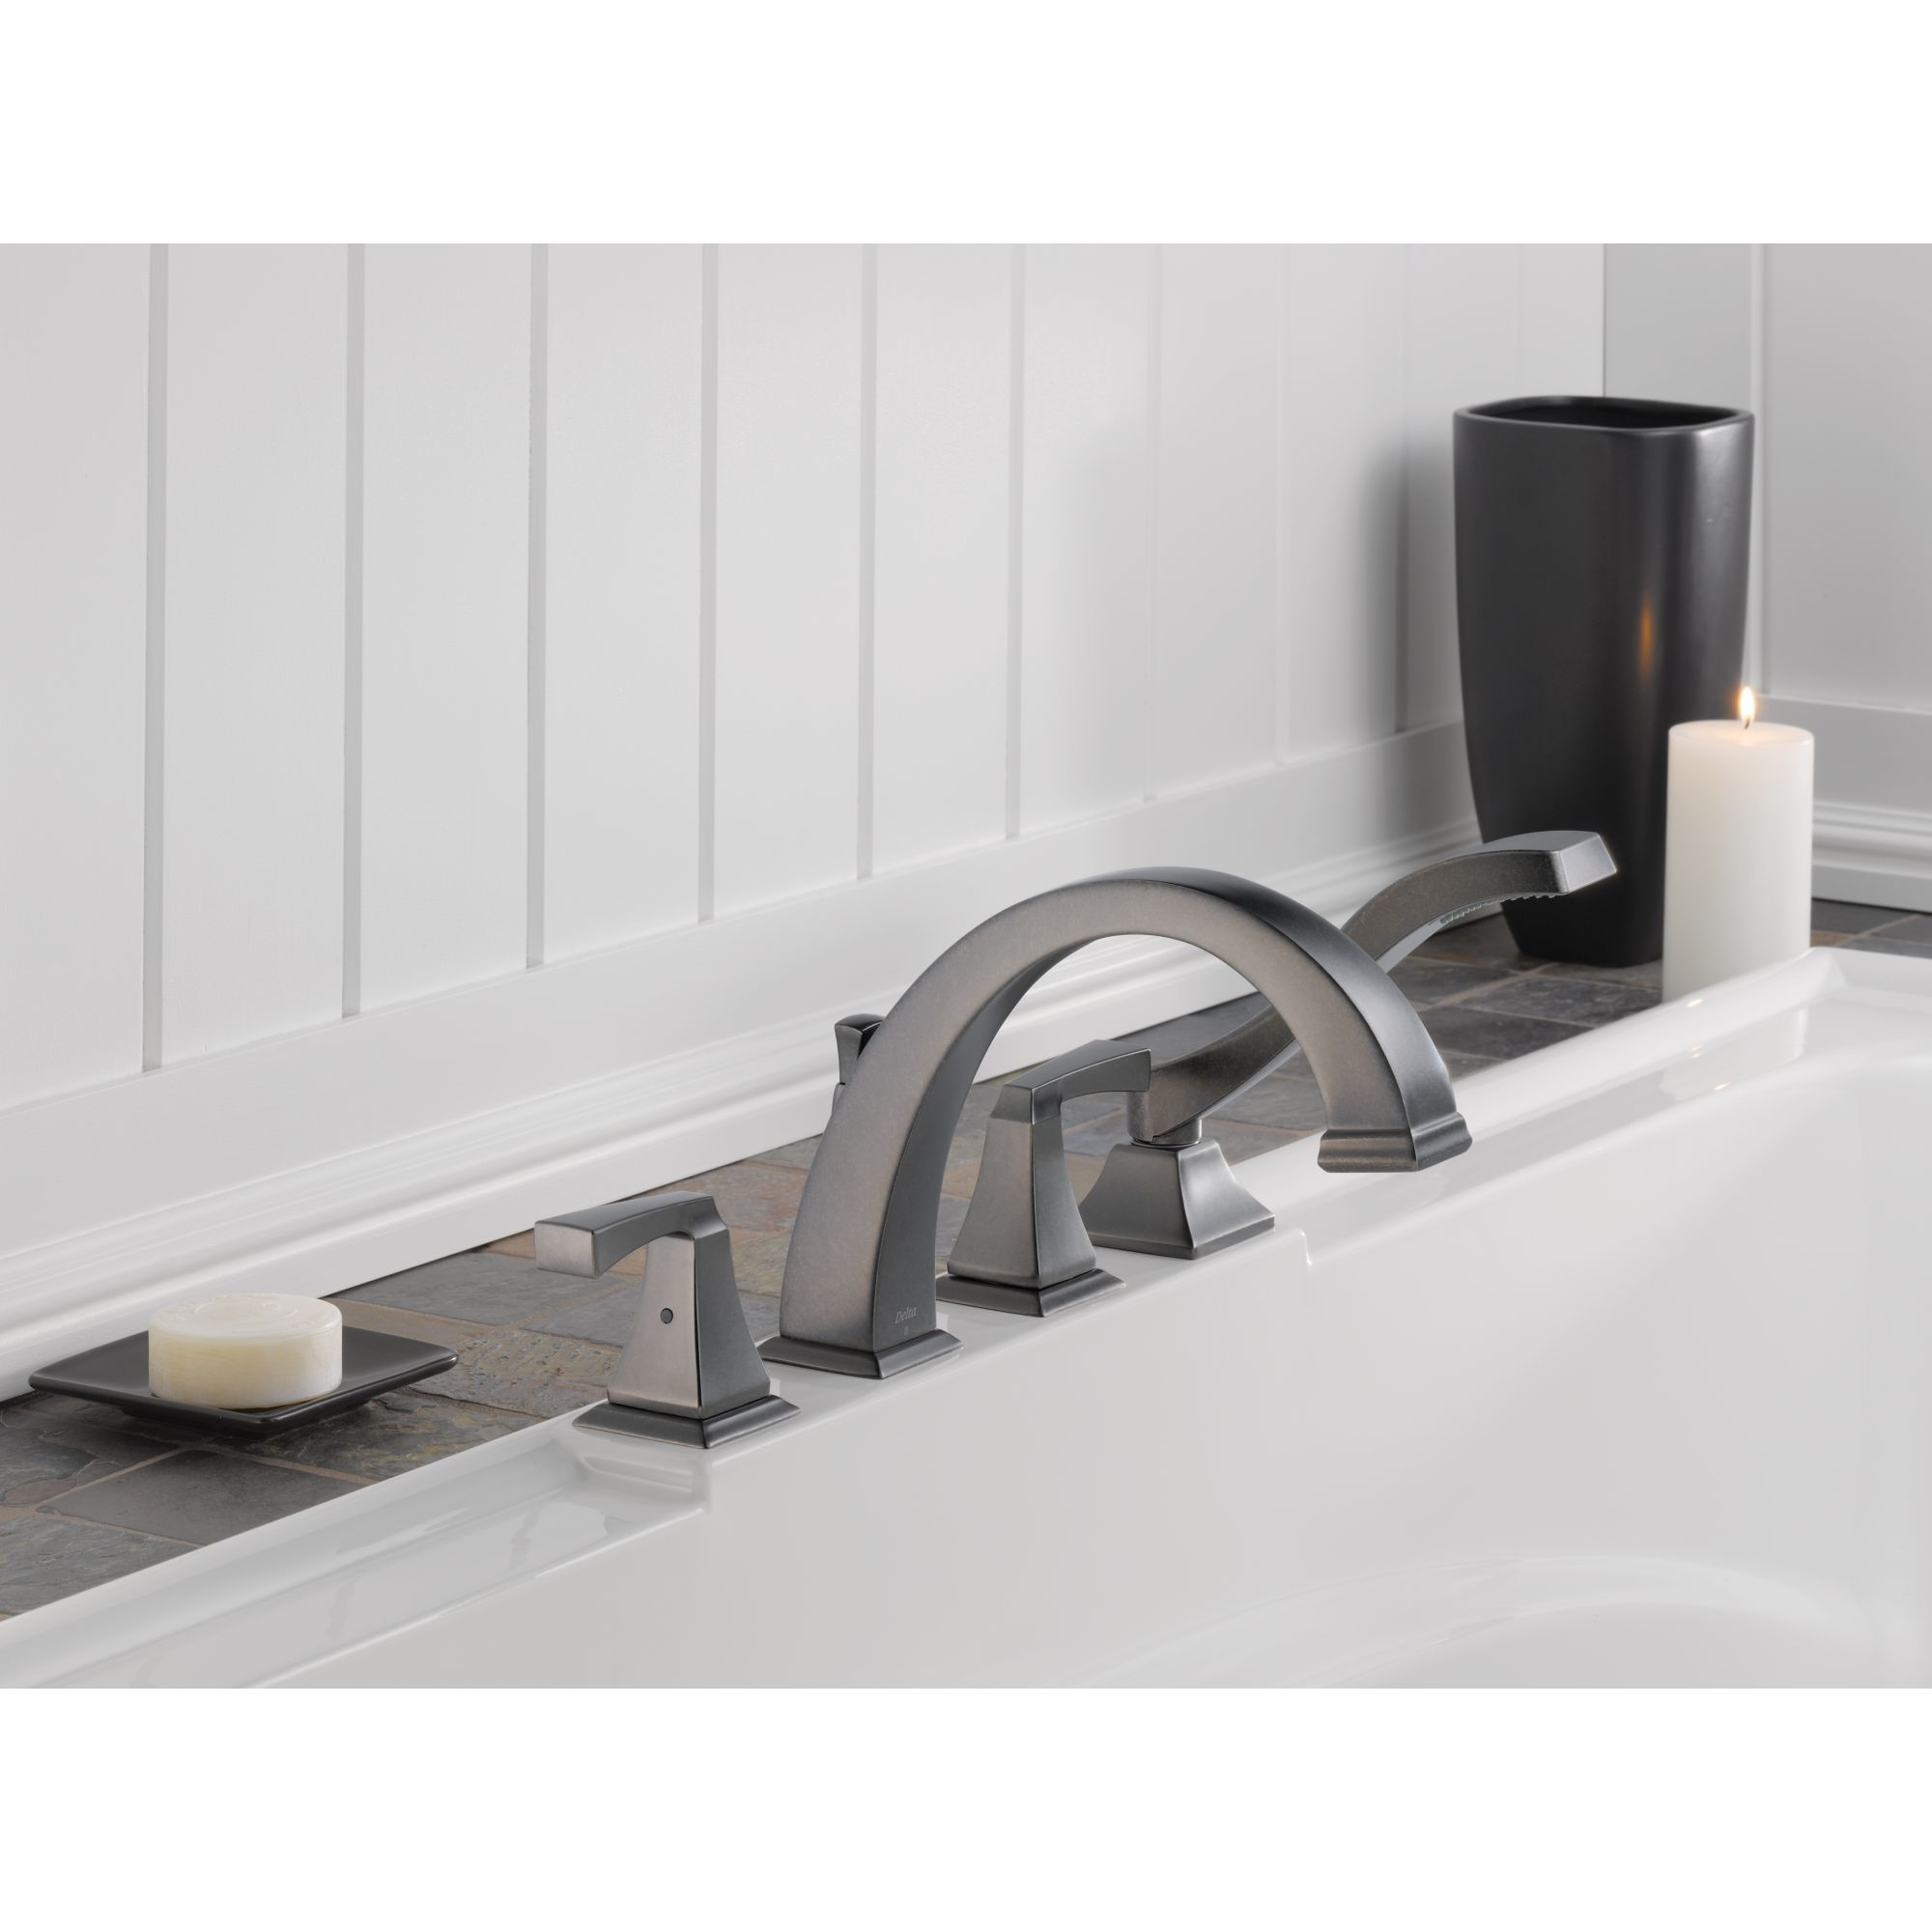 Enhance Your E With The Innovative Dryden Bathroom Collection Of Products Now Available From Delta Faucet